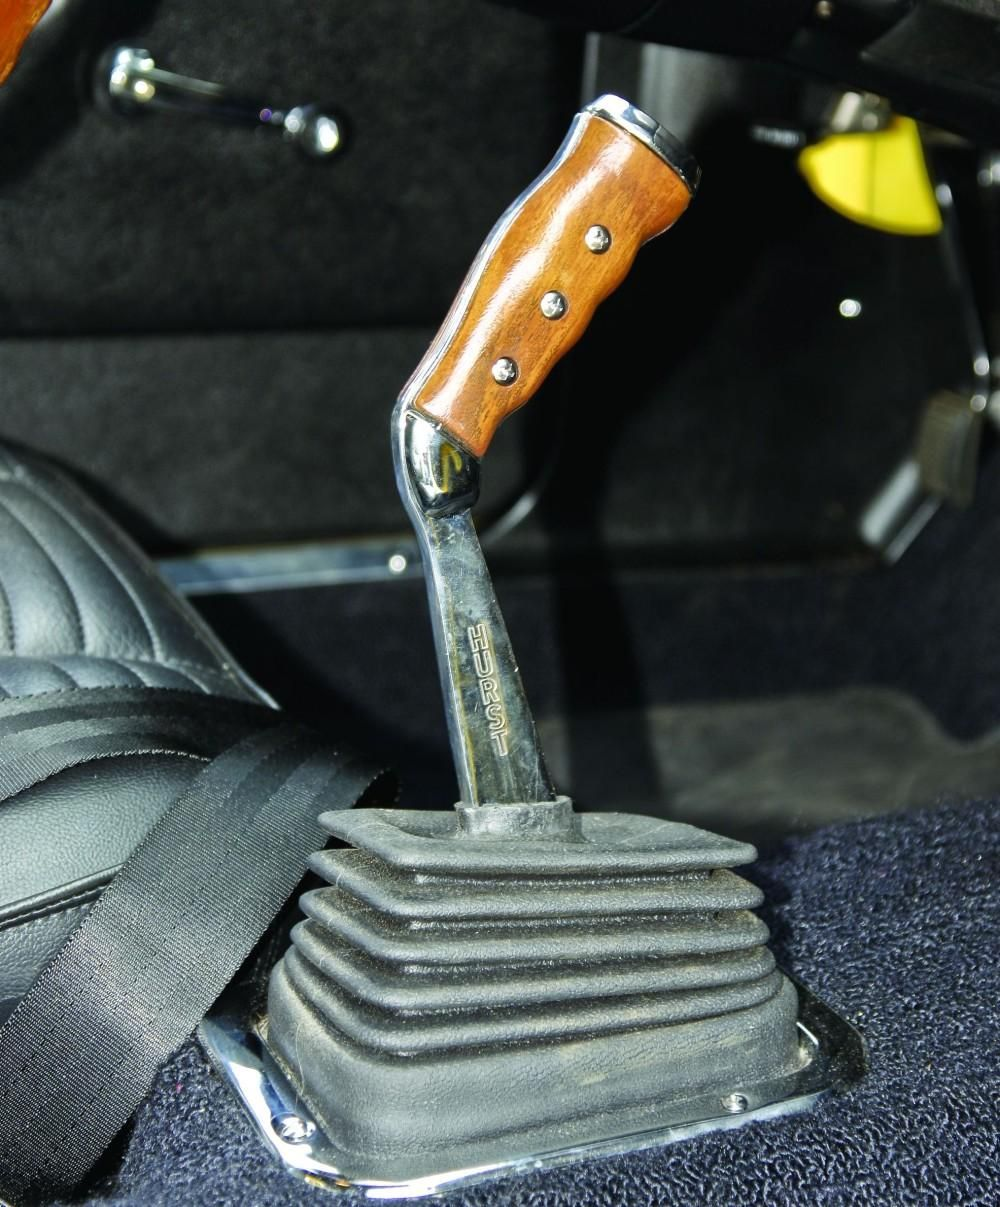 mopars pistol grip shifter from the early 70s passengers